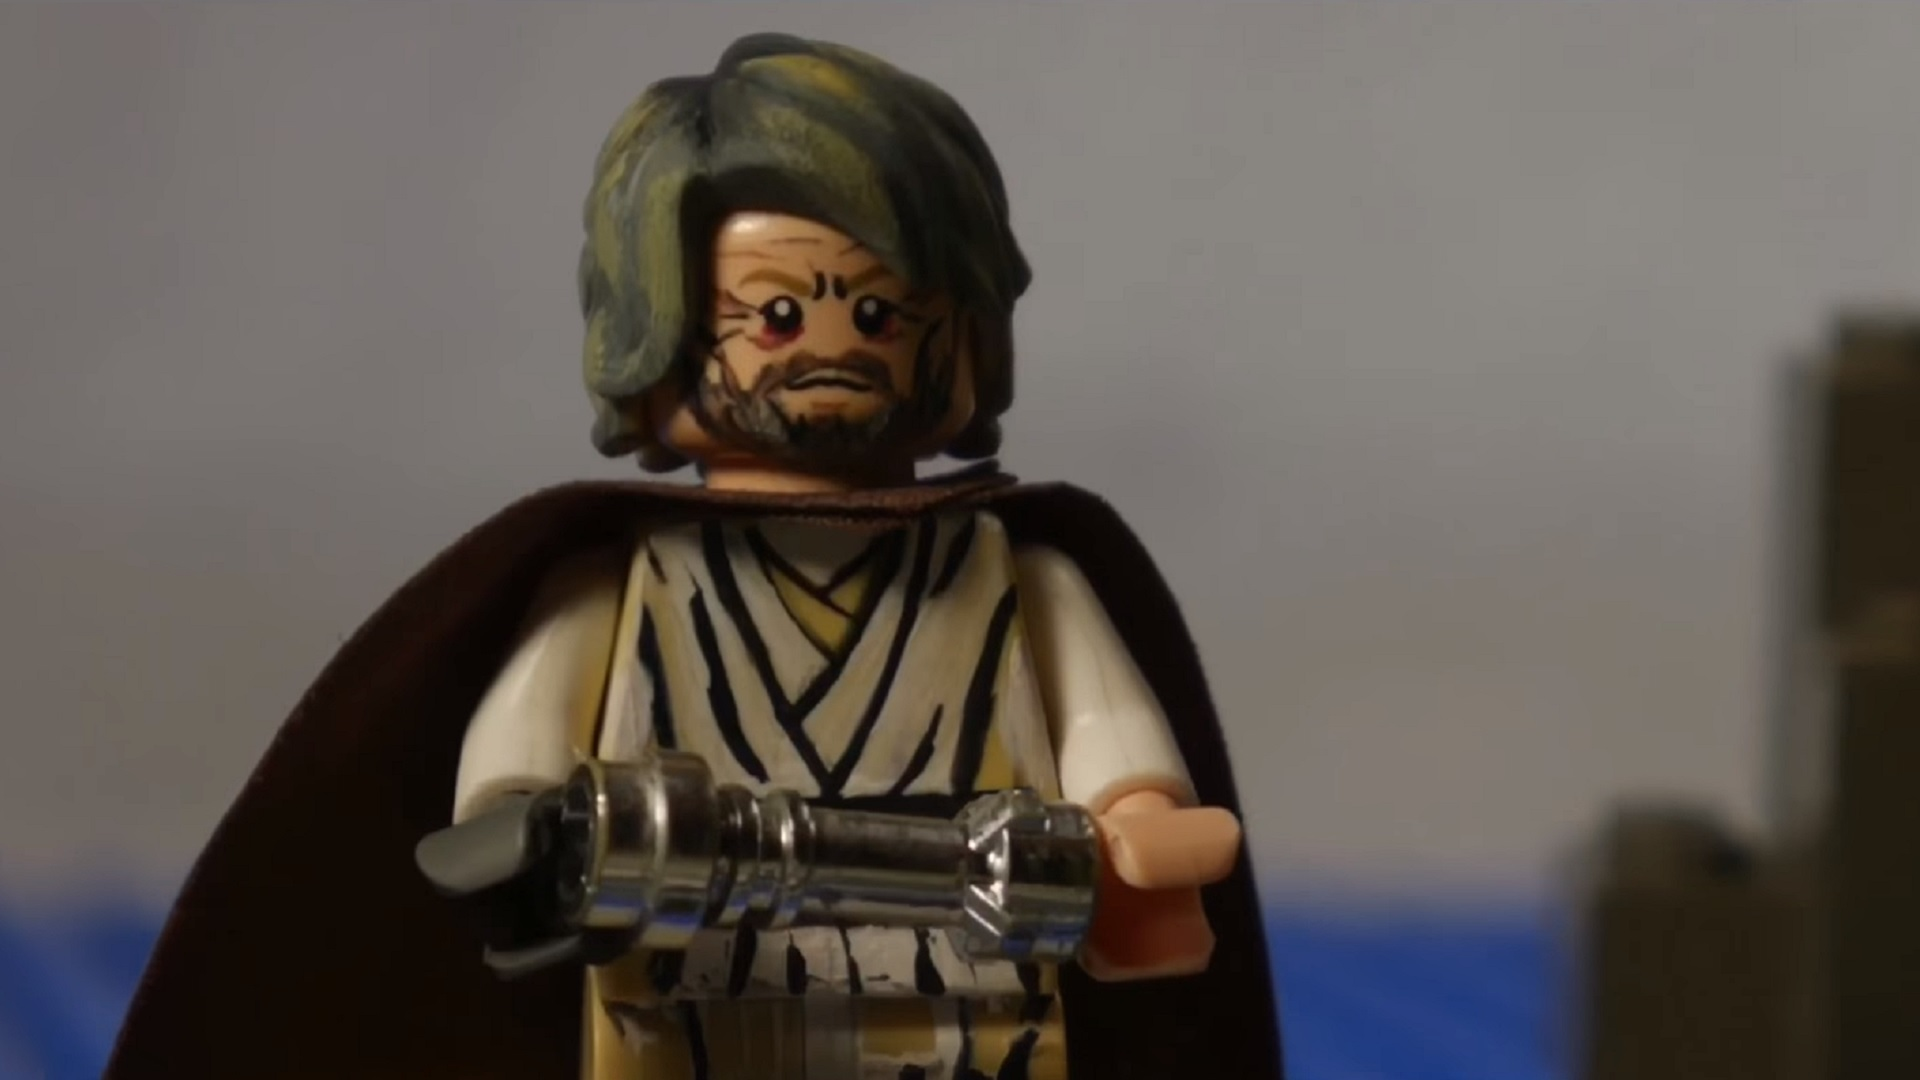 check-out-star-wars-the-last-jedi-recreated-in-lego-social.jpg